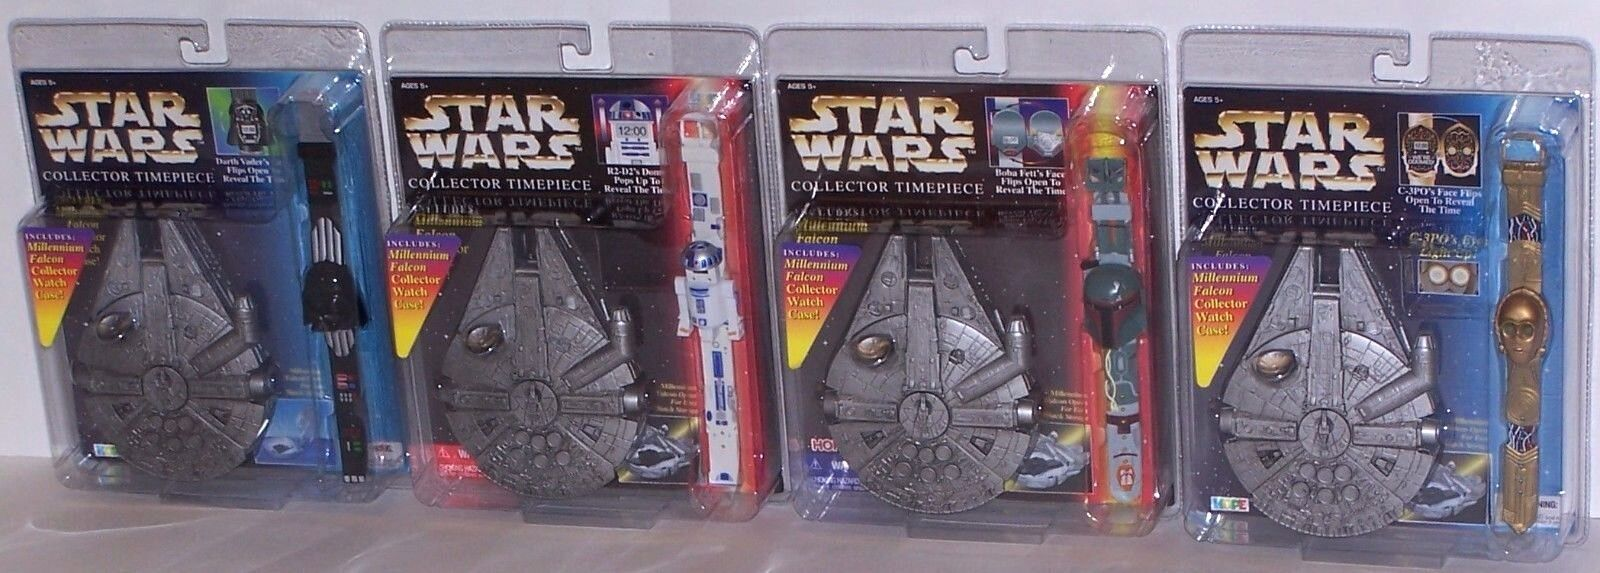 Star Wars Collector Watches Set of 4 w/ Millennium Falcon Cases NIP